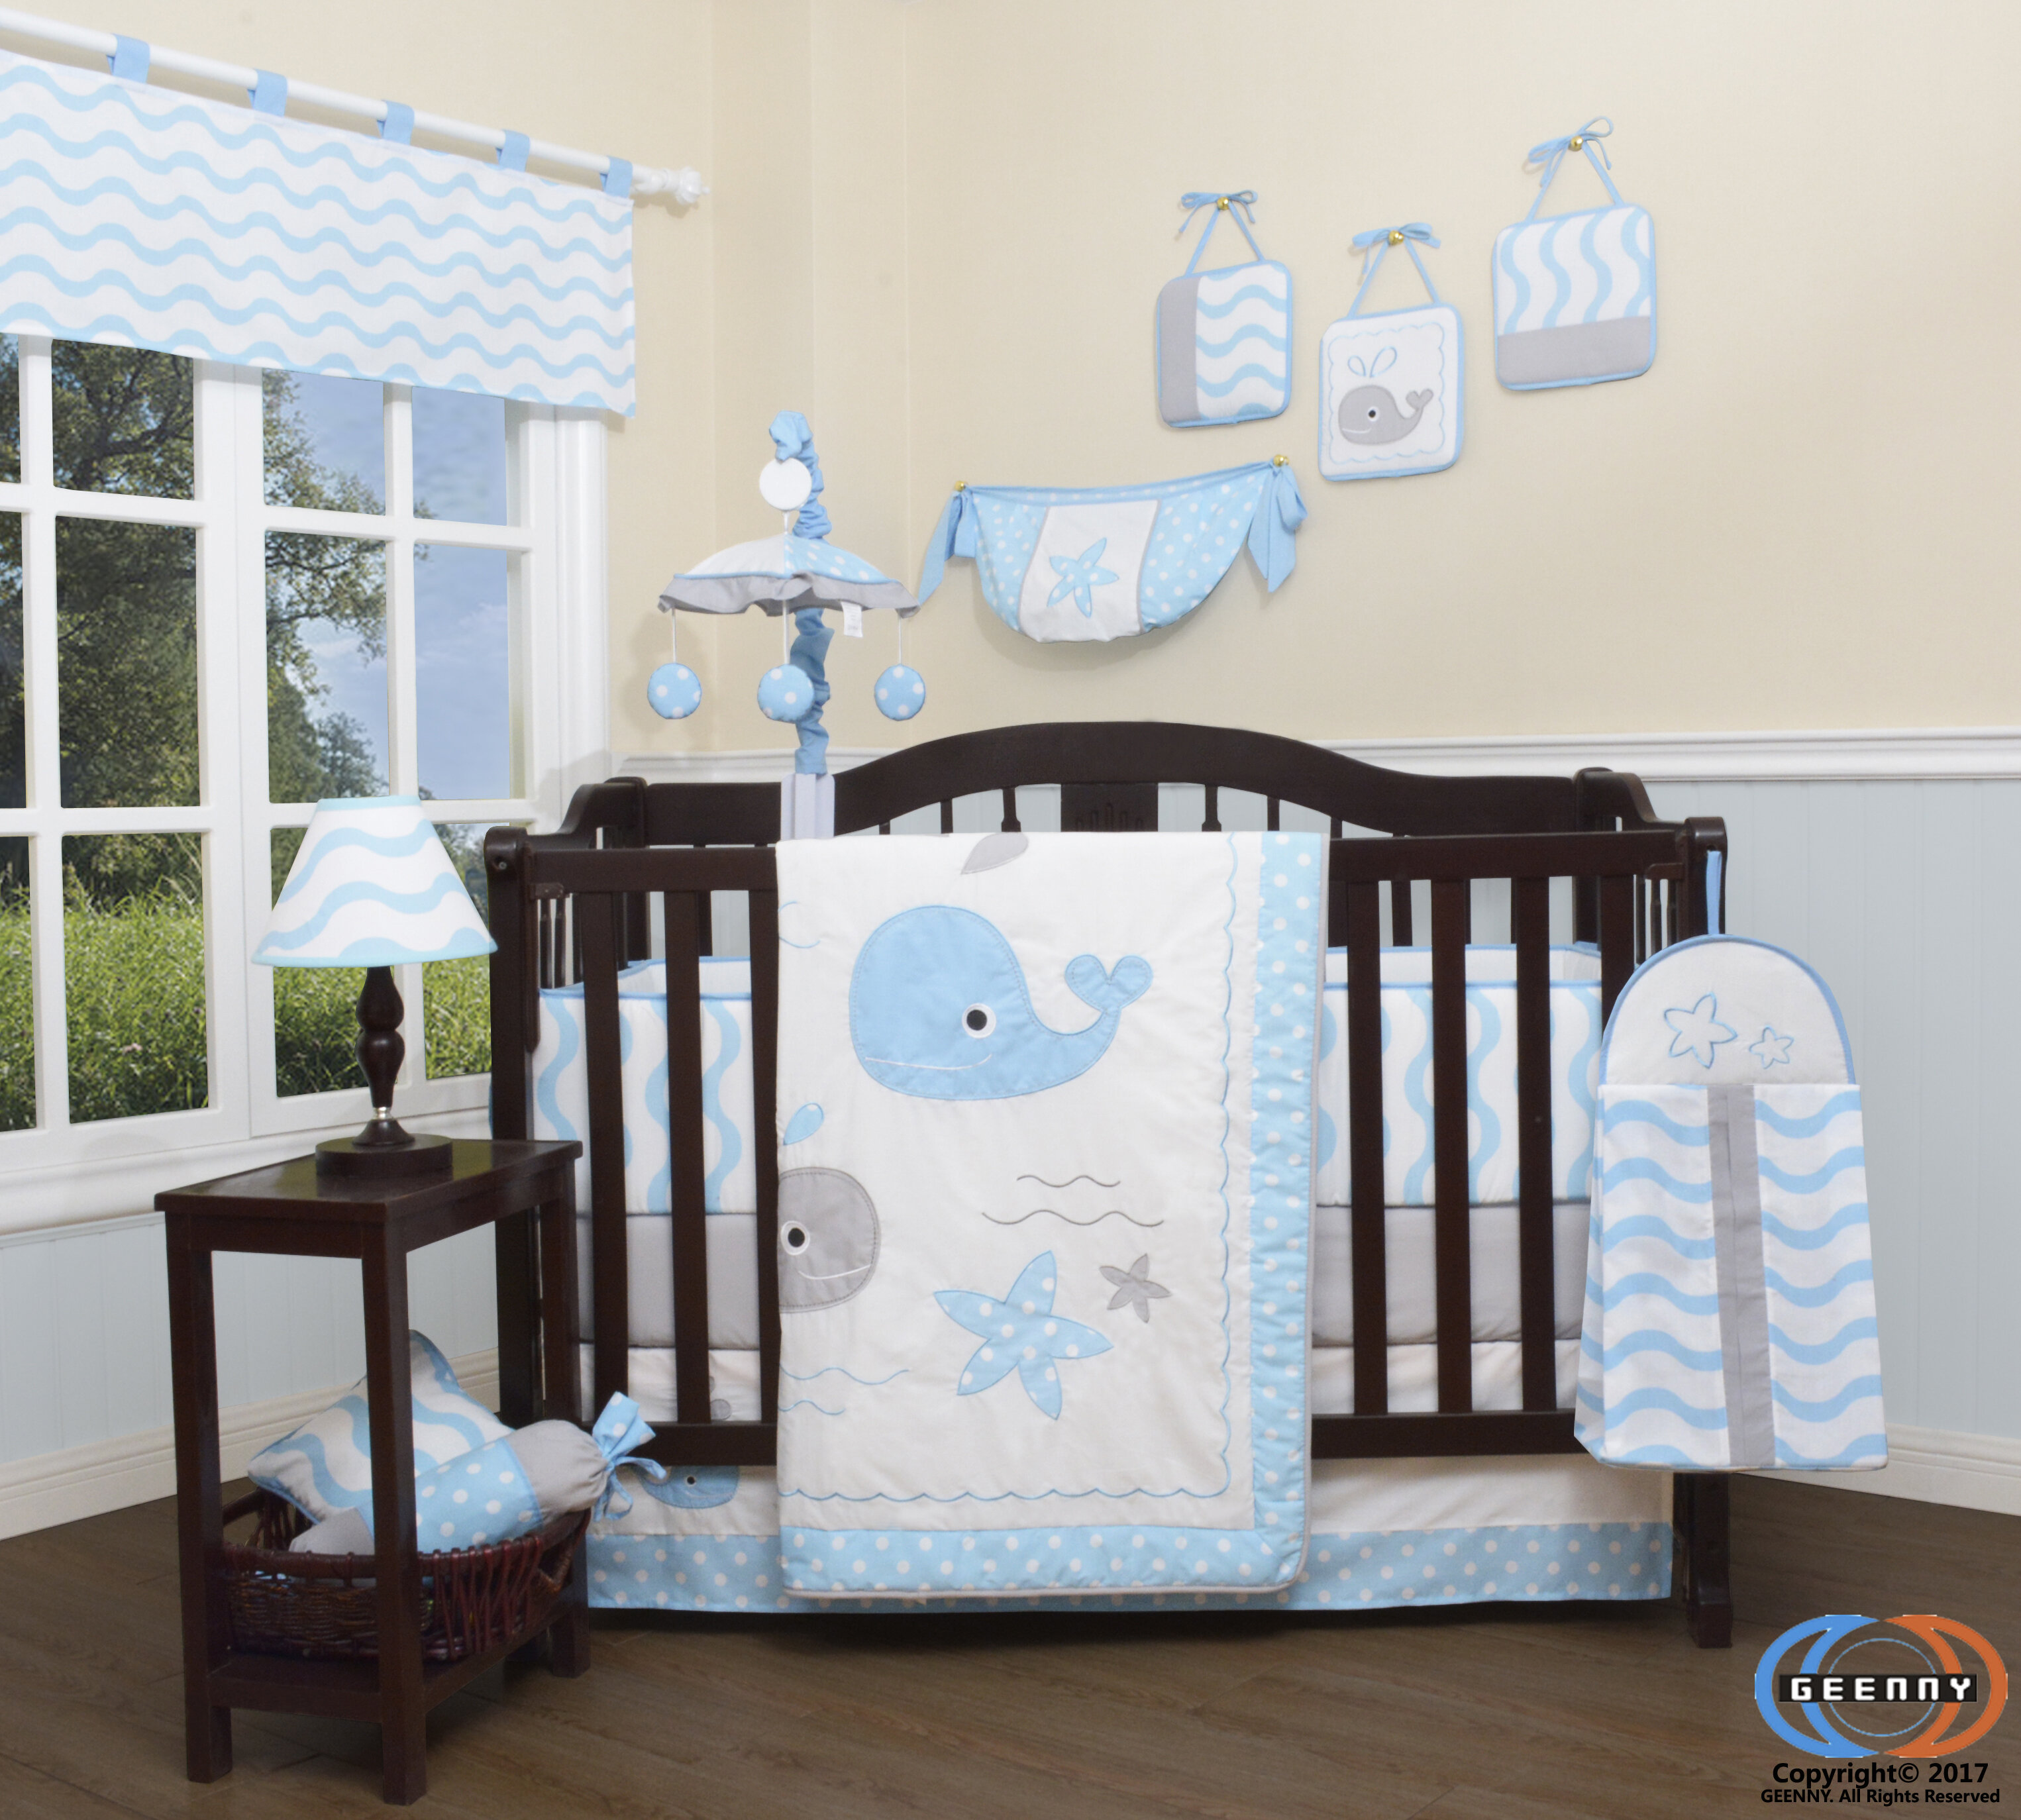 Pierson Baby Lovely Whale Nursery 13 Piece Crib Bedding Set